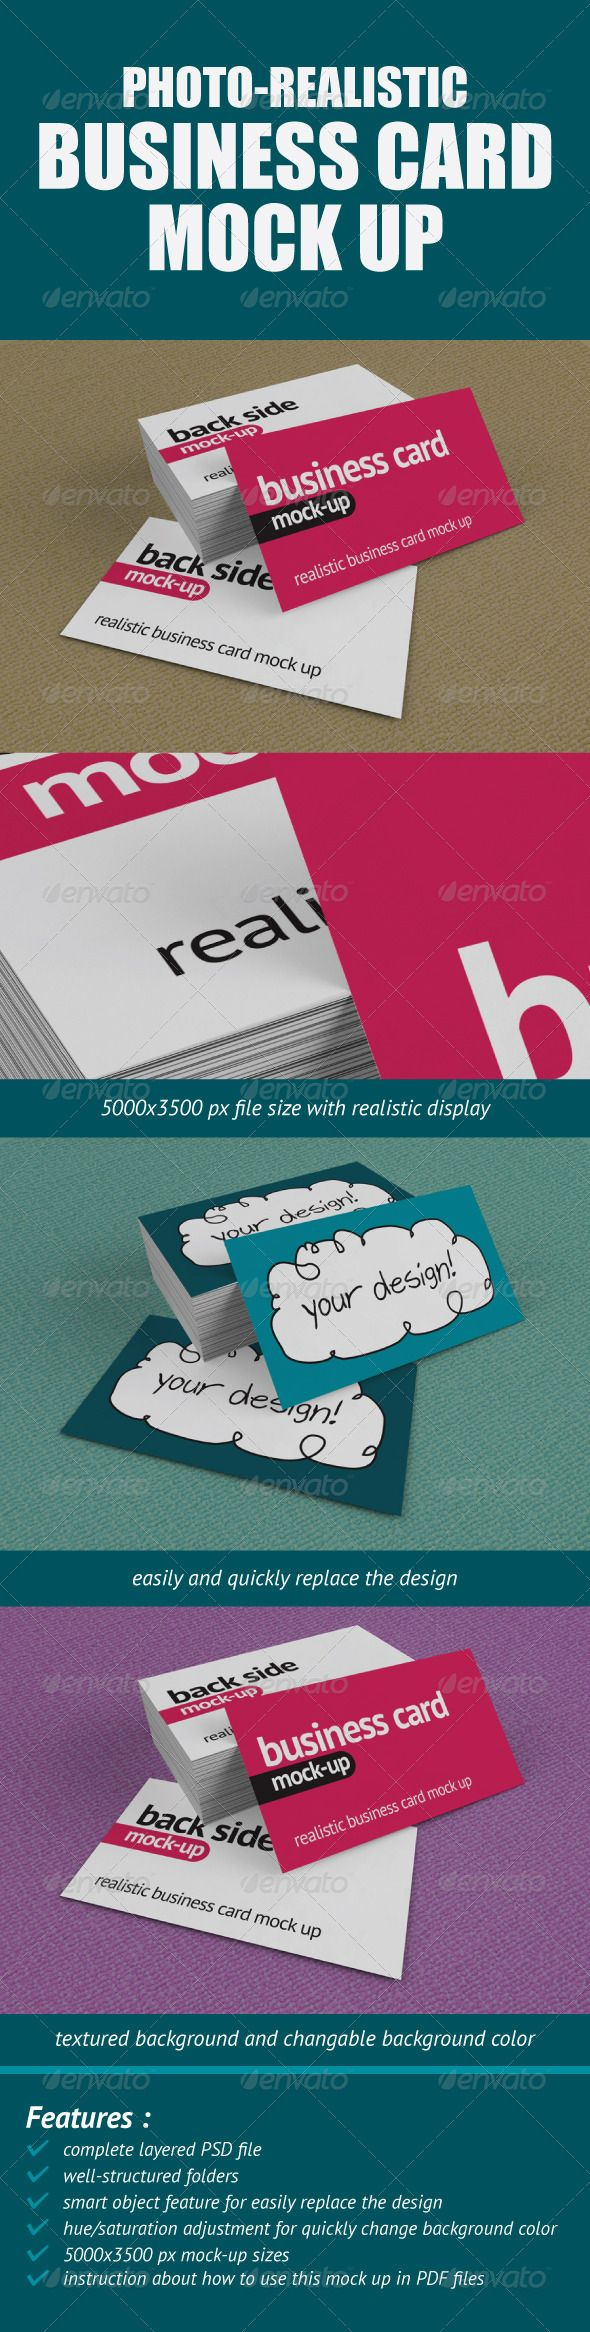 PhotoRealistic Business Card MockUp — Photoshop PSD #logo #preview • Available here → https://graphicriver.net/item/photorealistic-business-card-mockup/549753?ref=pxcr